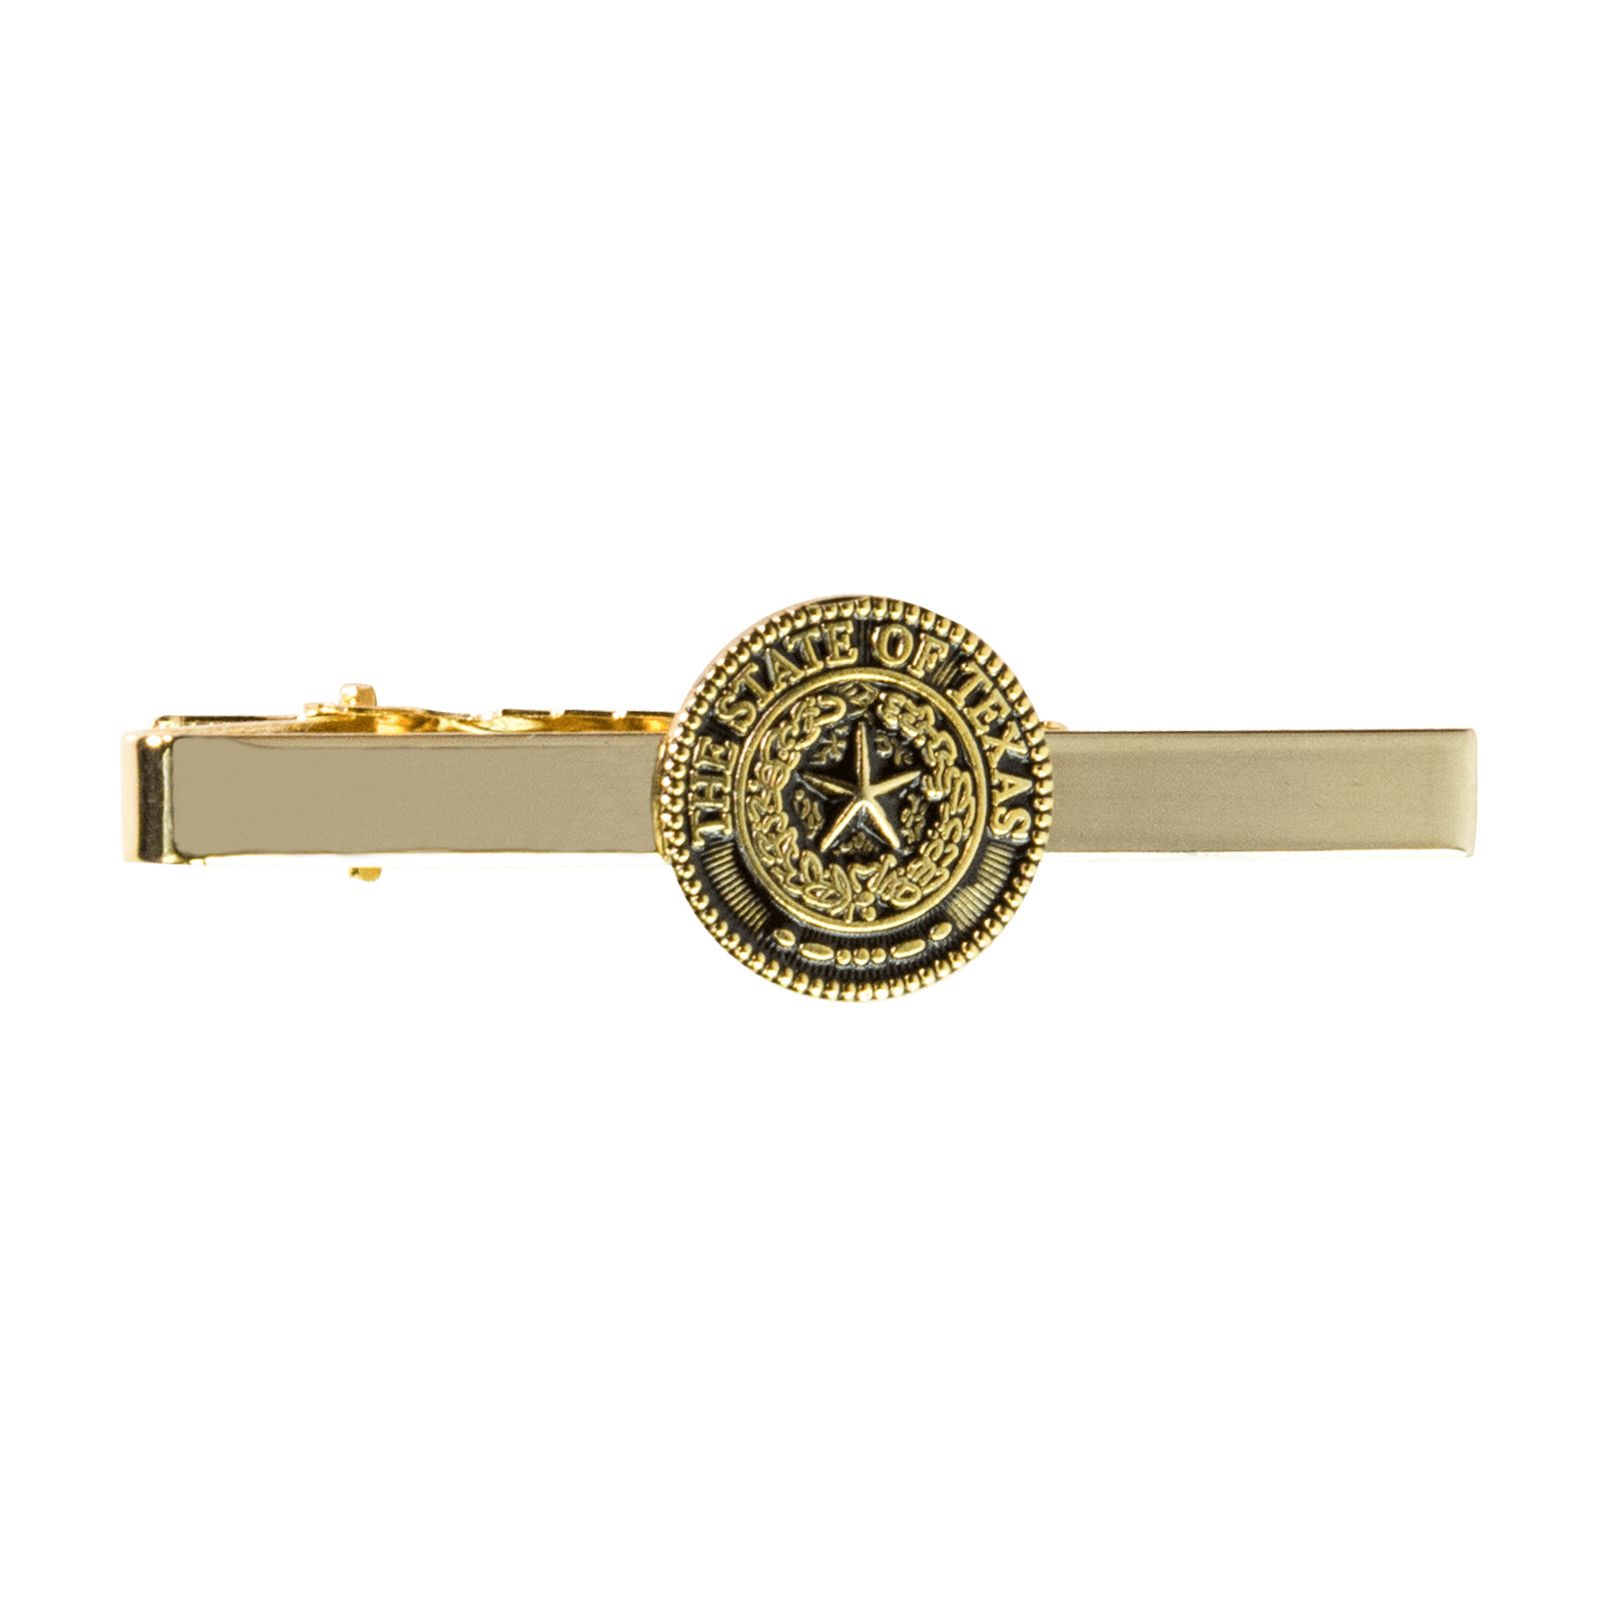 Texas State Seal Gold Tone Tie Bar